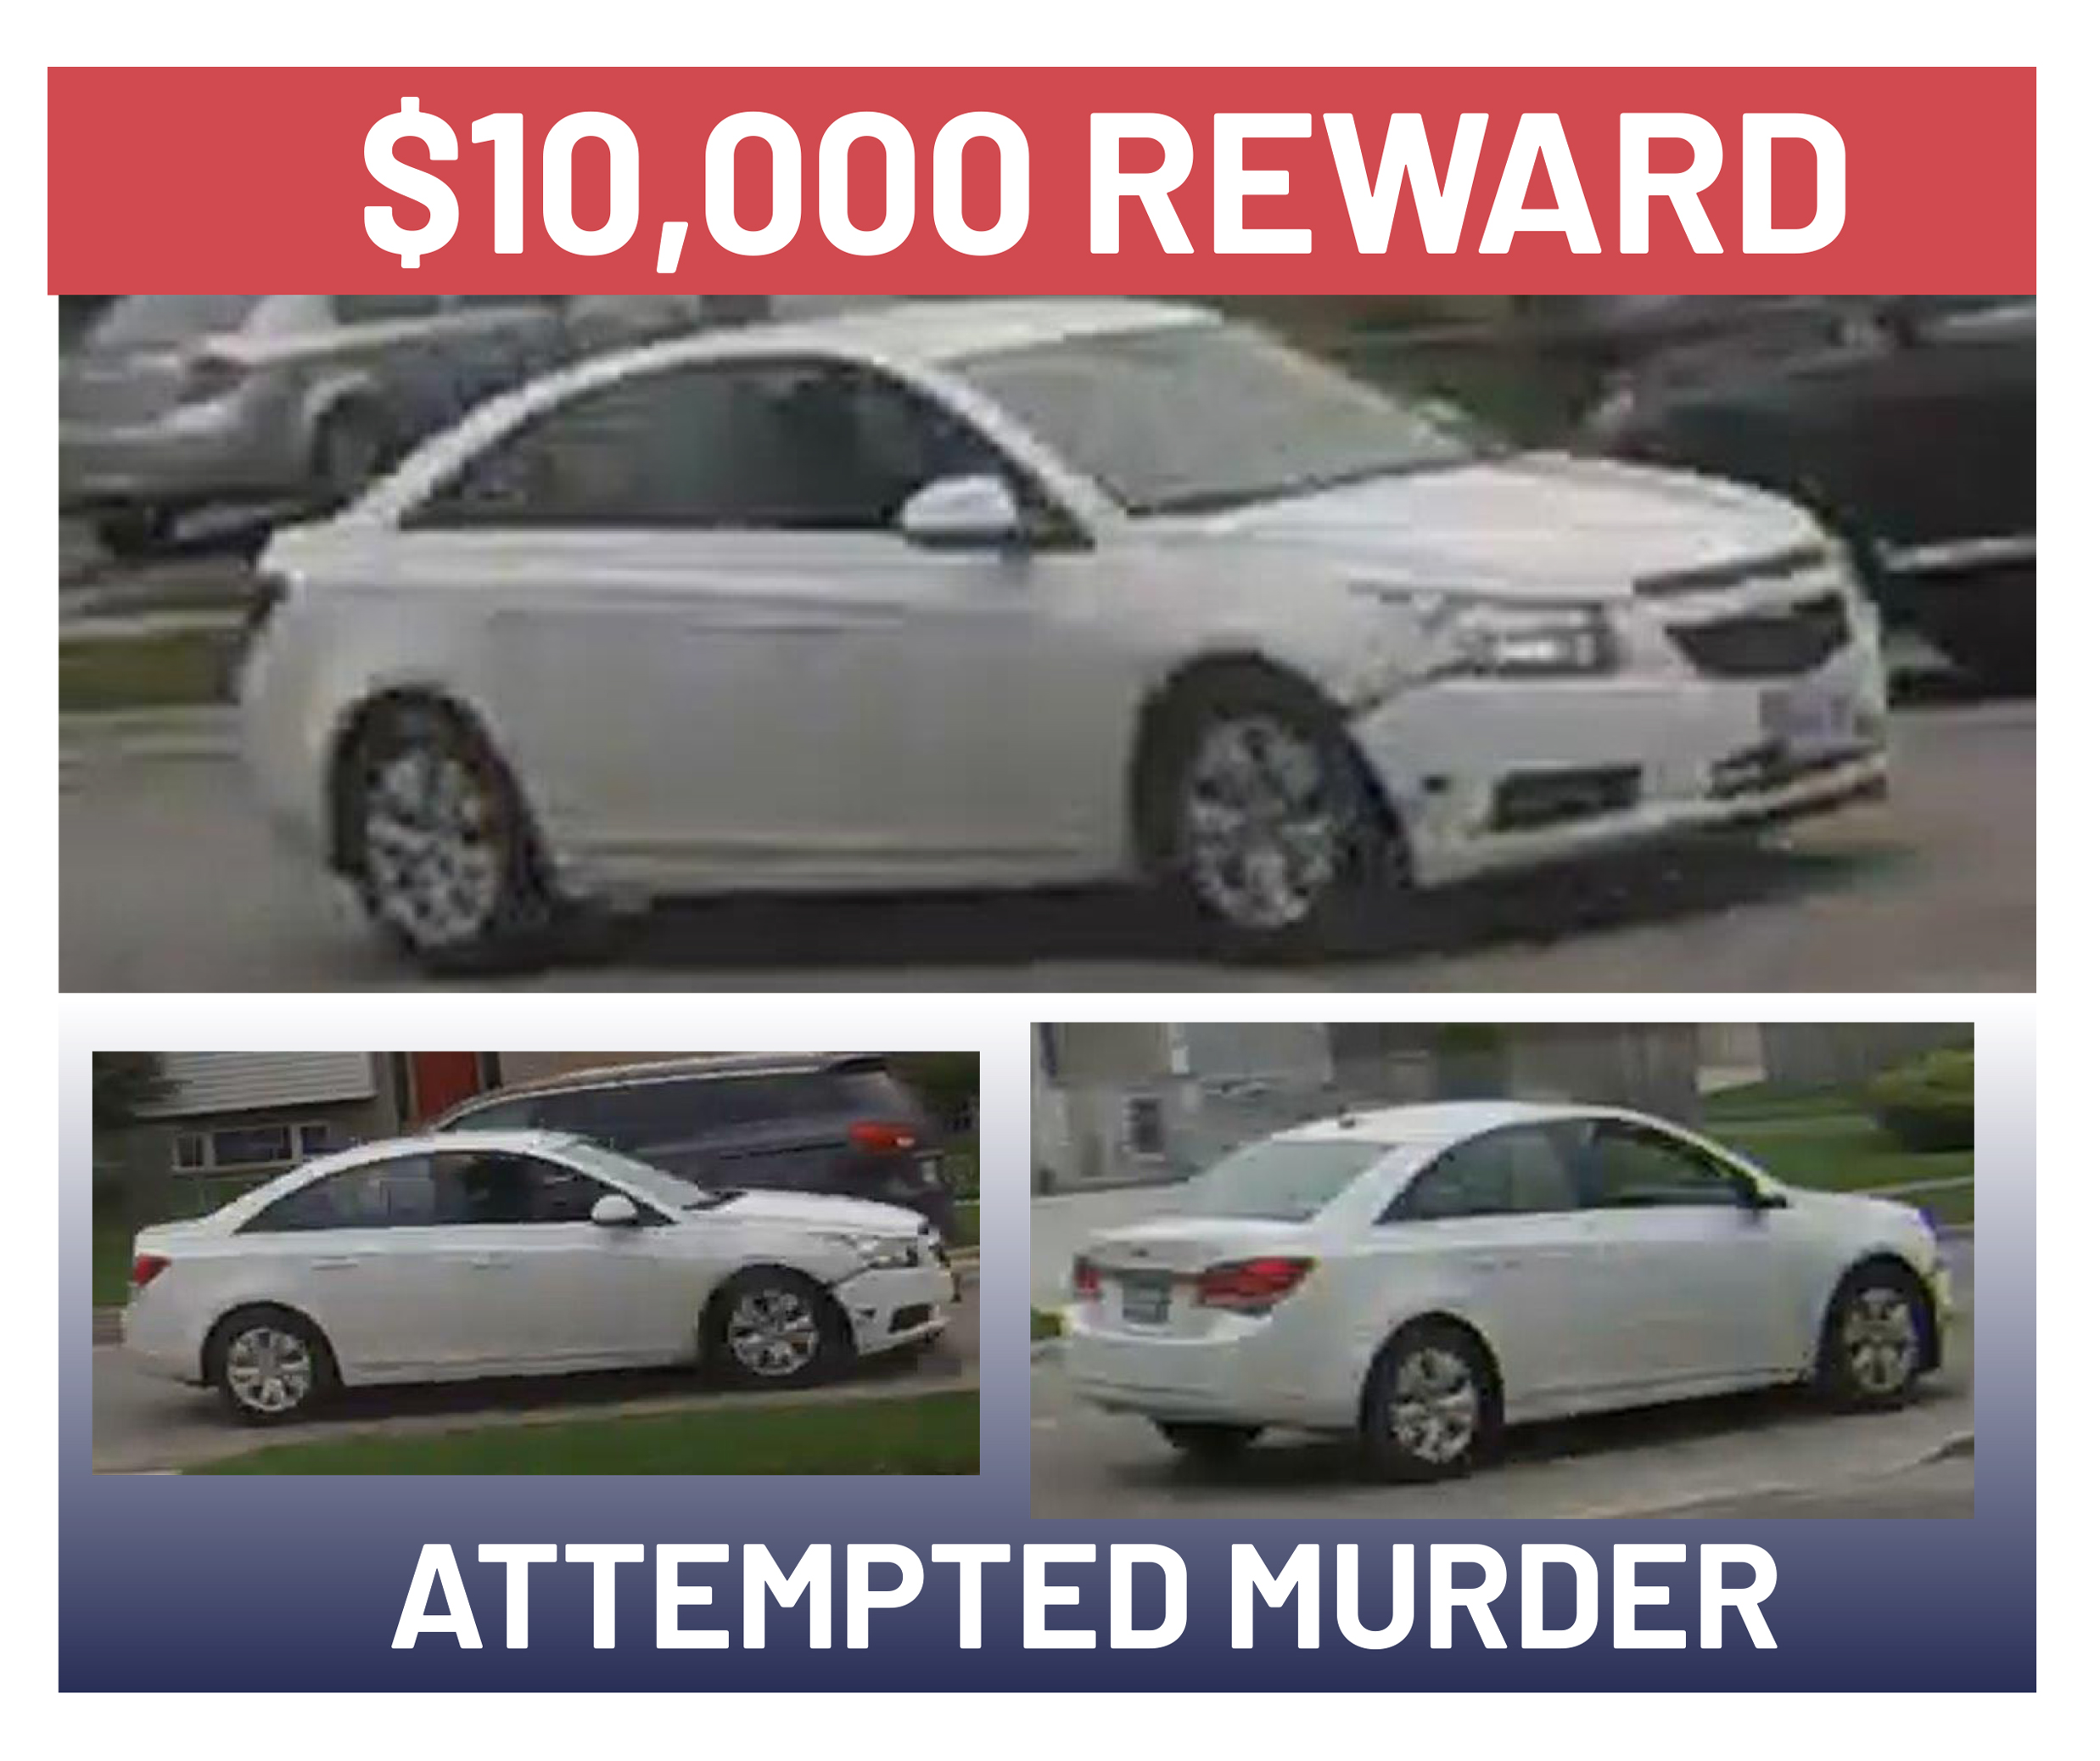 This is an image of the vehicle involved